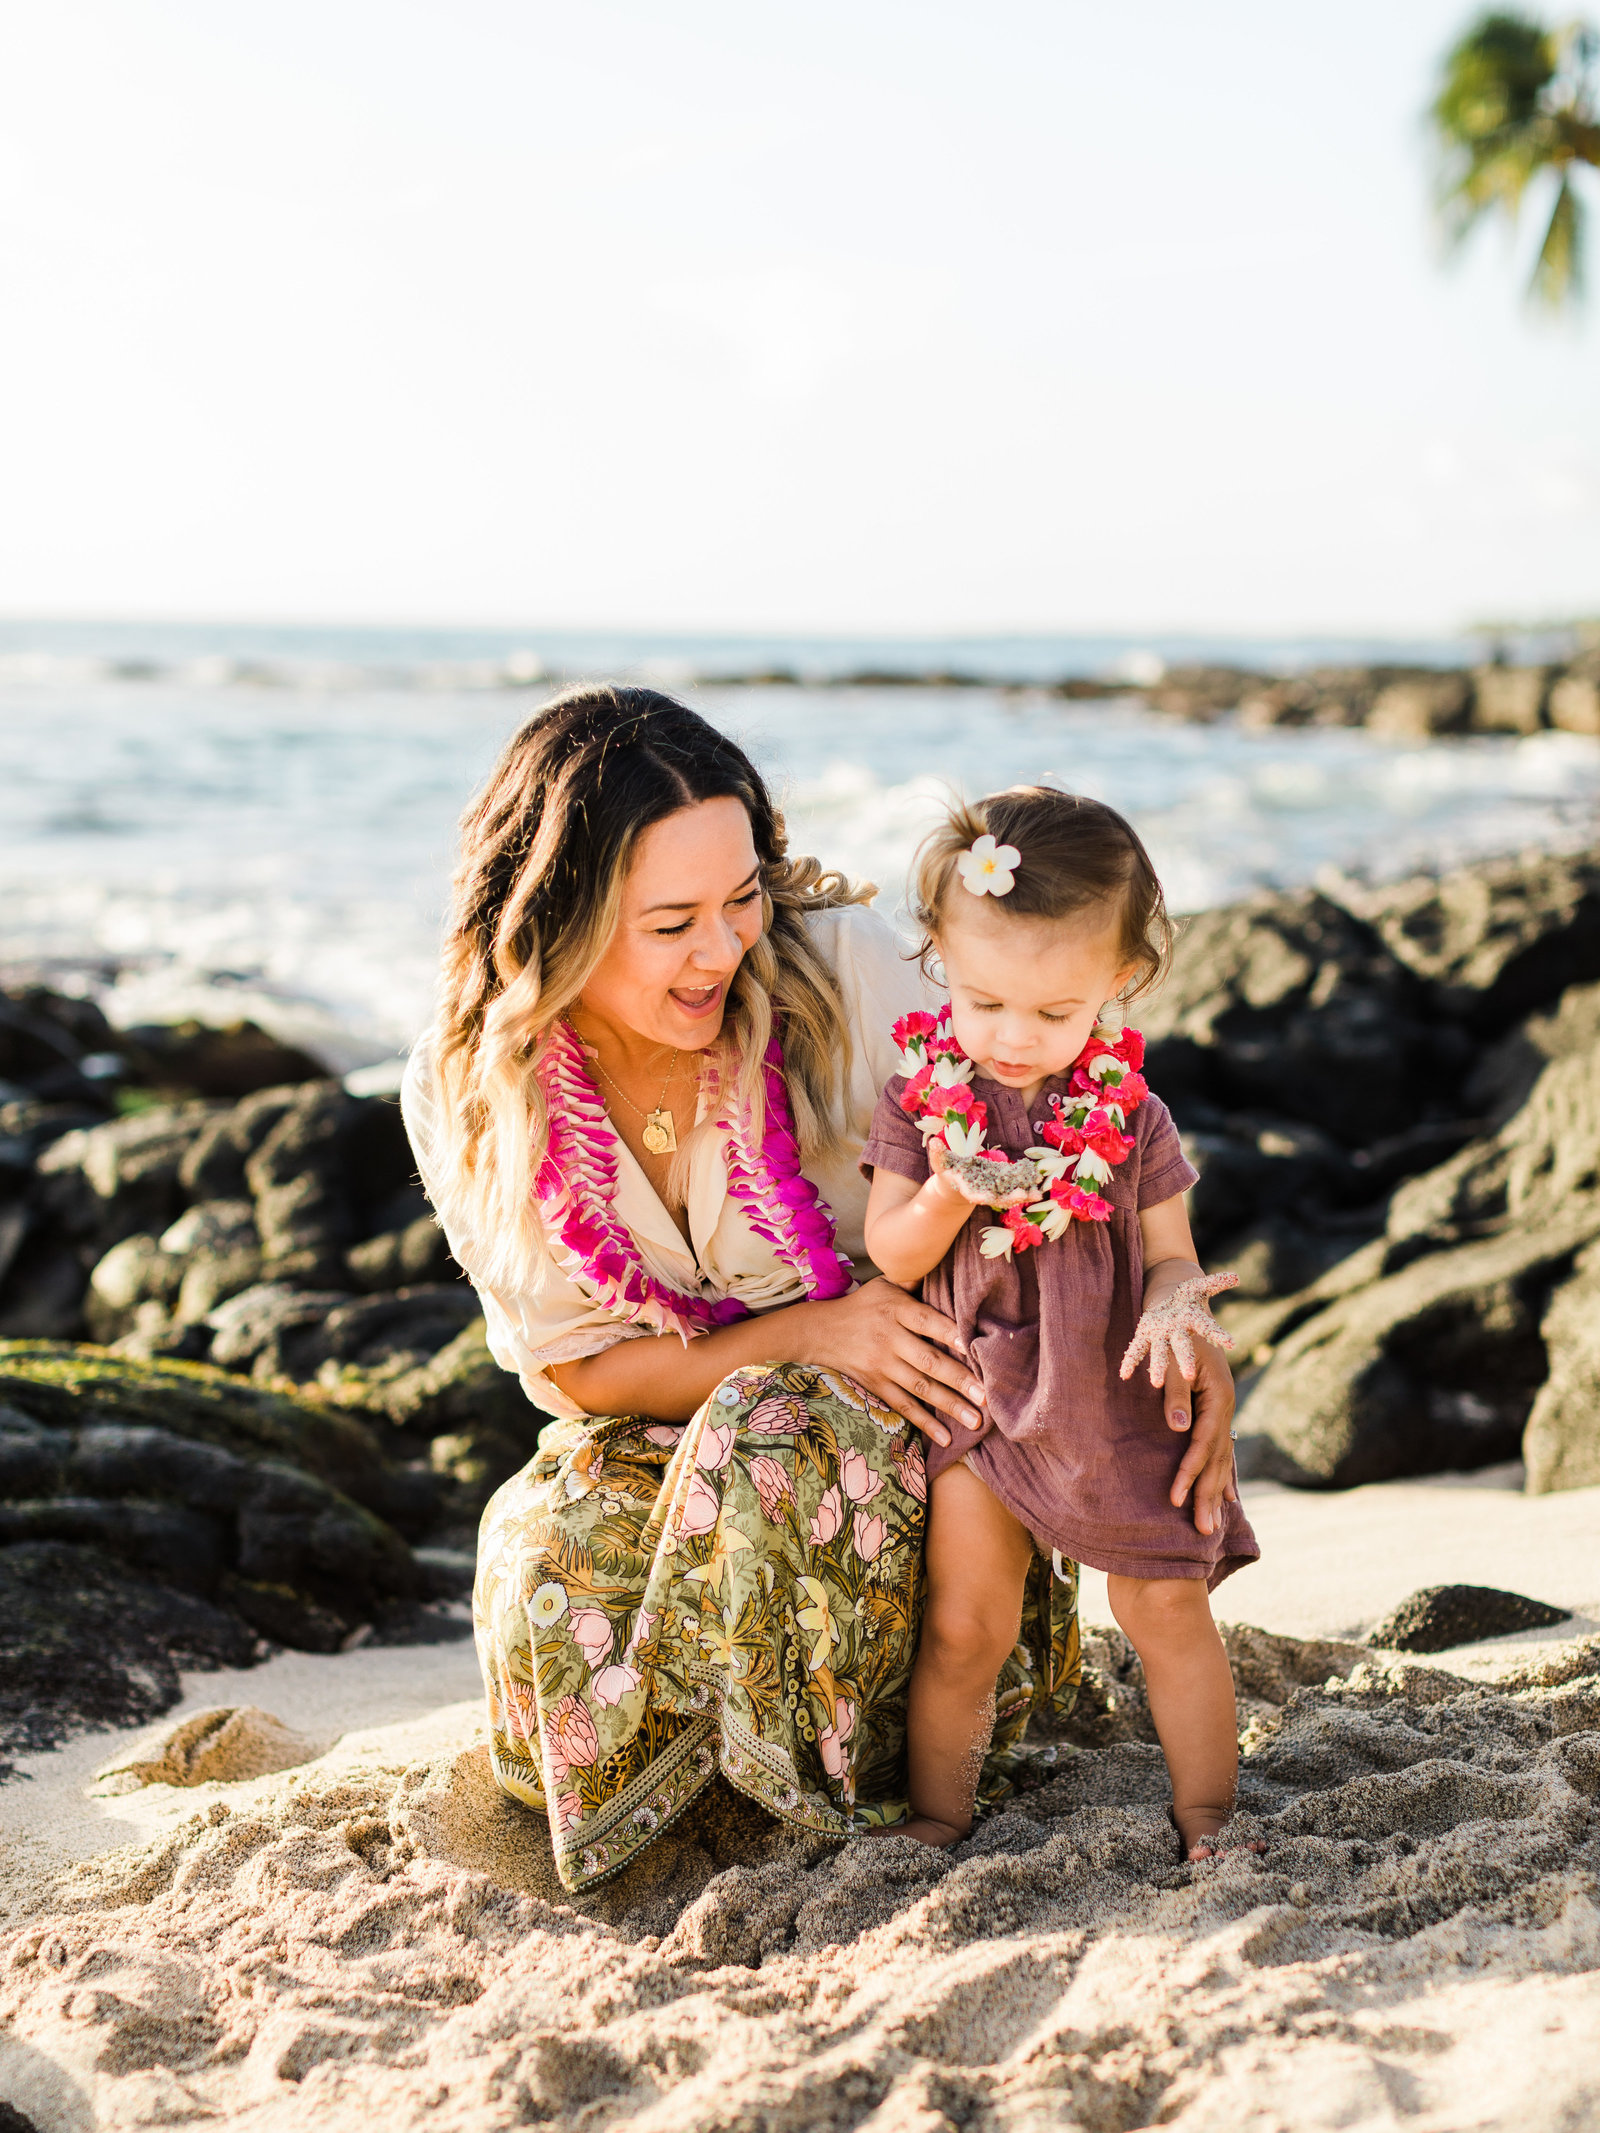 Young mother holds her young daughter on a beach in Hawaii, surrounded by lava rocks and palm trees. They wear tropical patterns and leis.